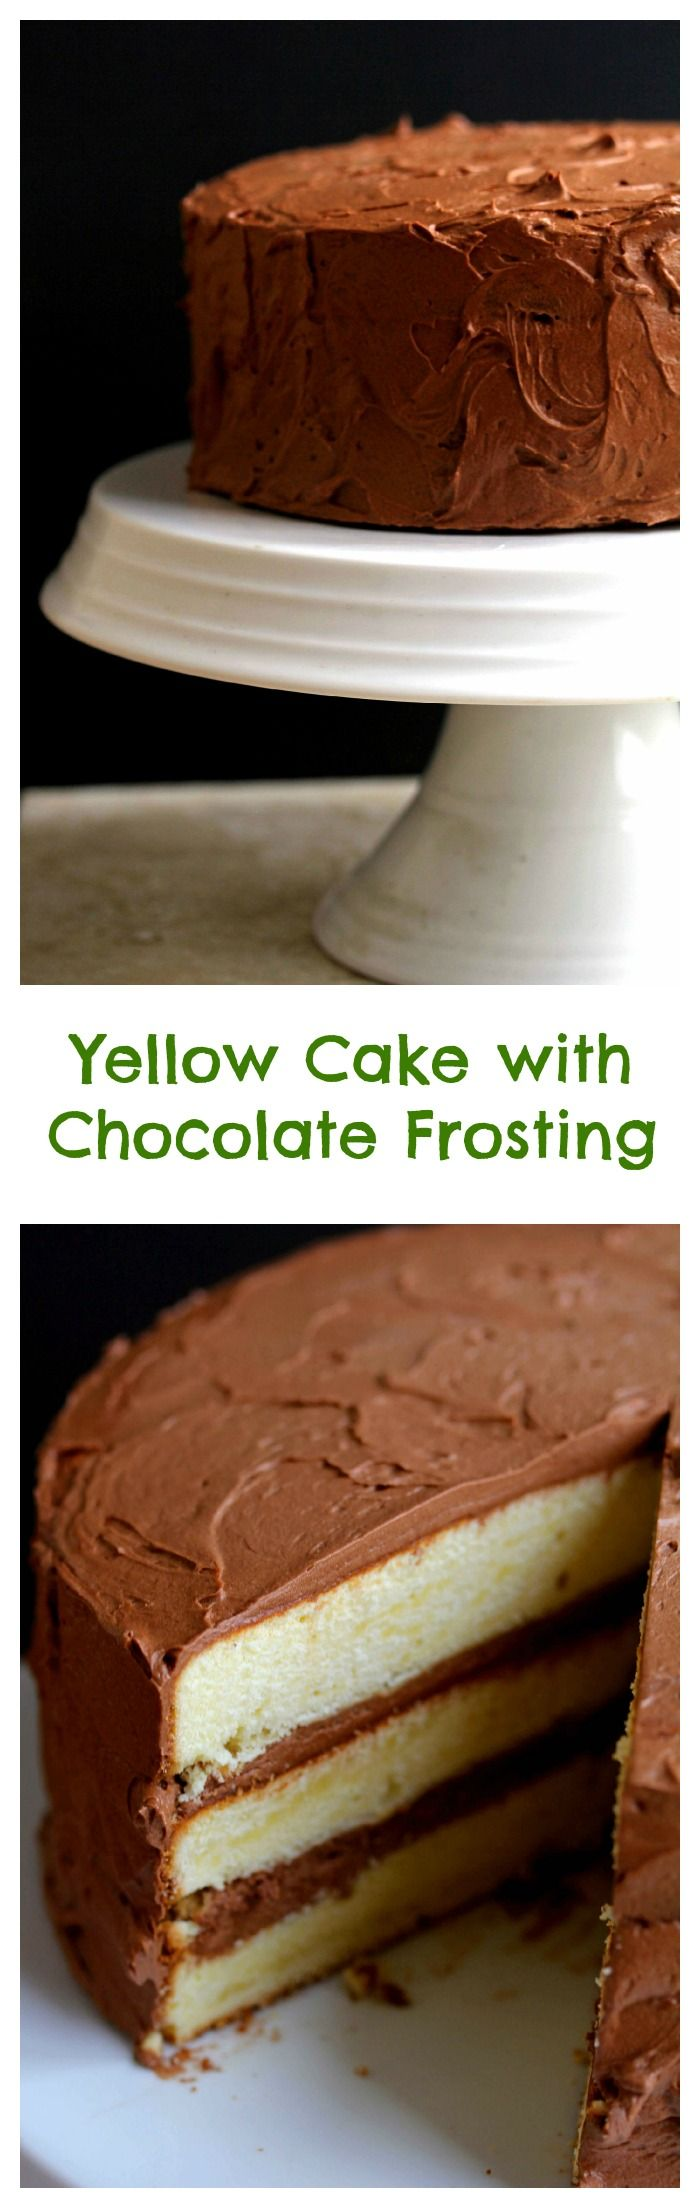 Yellow Cake with Chocolate Frosting | Grandbaby Cakes